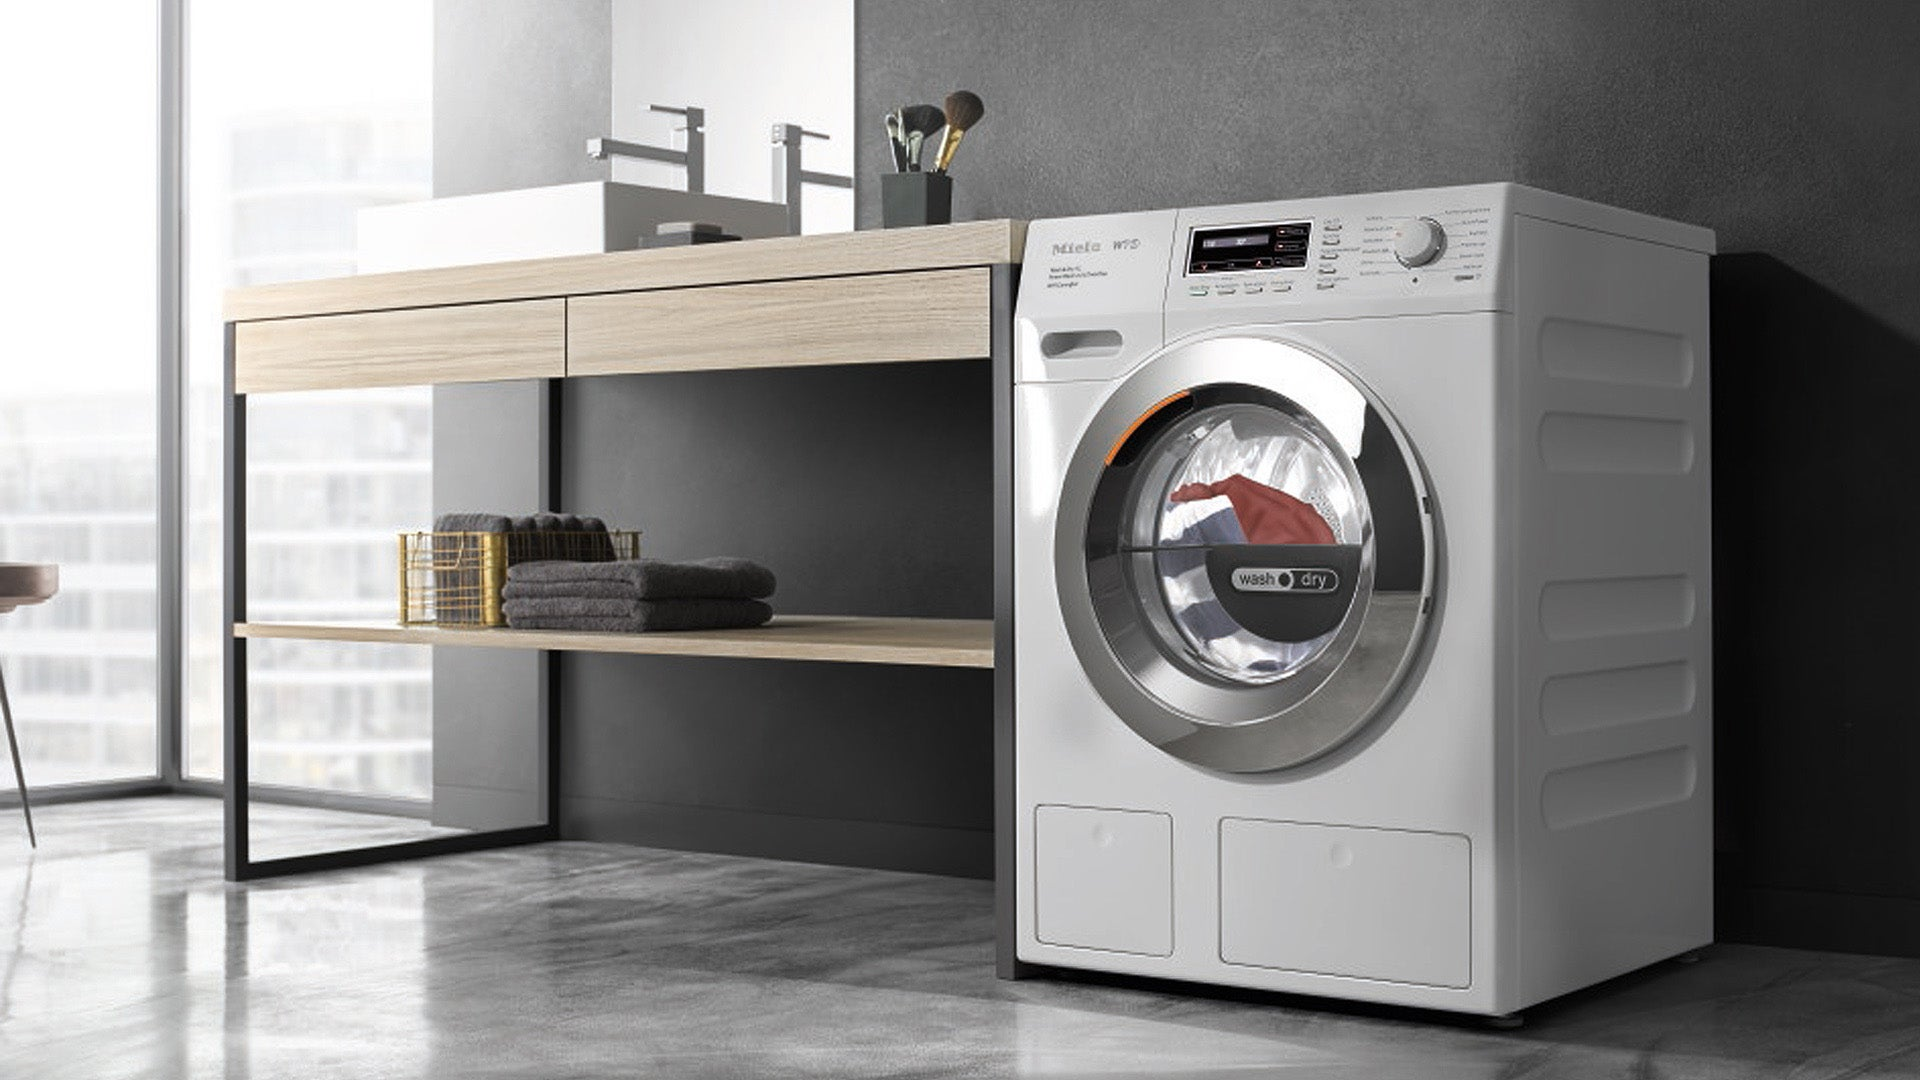 Miele Wth120 Washer Dryer Review Trusted Reviews Ipso Washing Machine Wiring Diagram